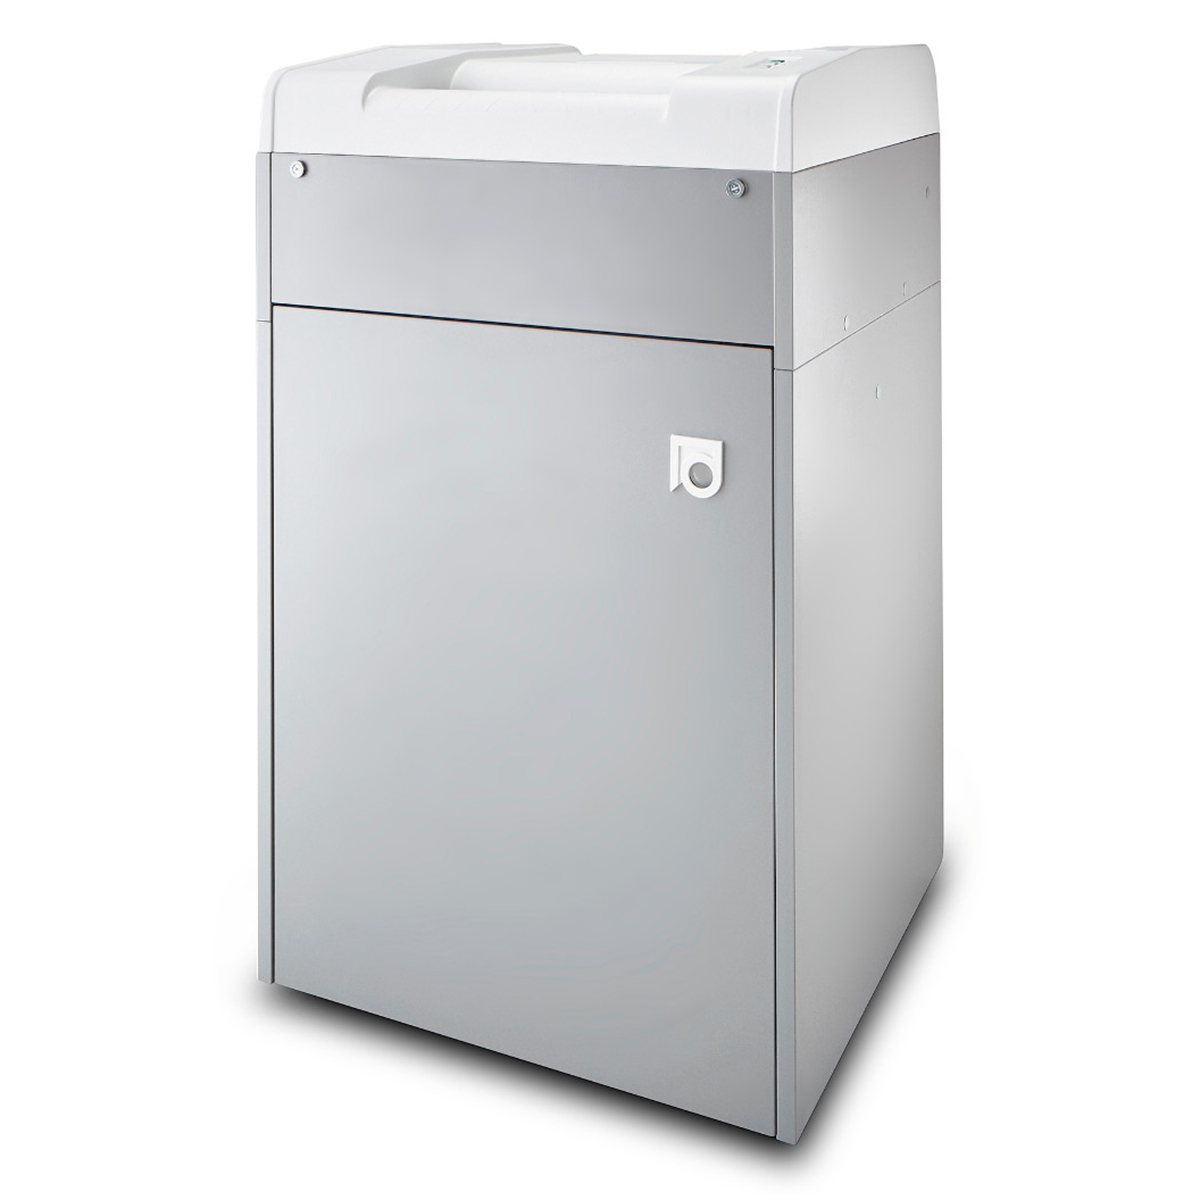 Dahle 119 Professional Strip cut Shredder